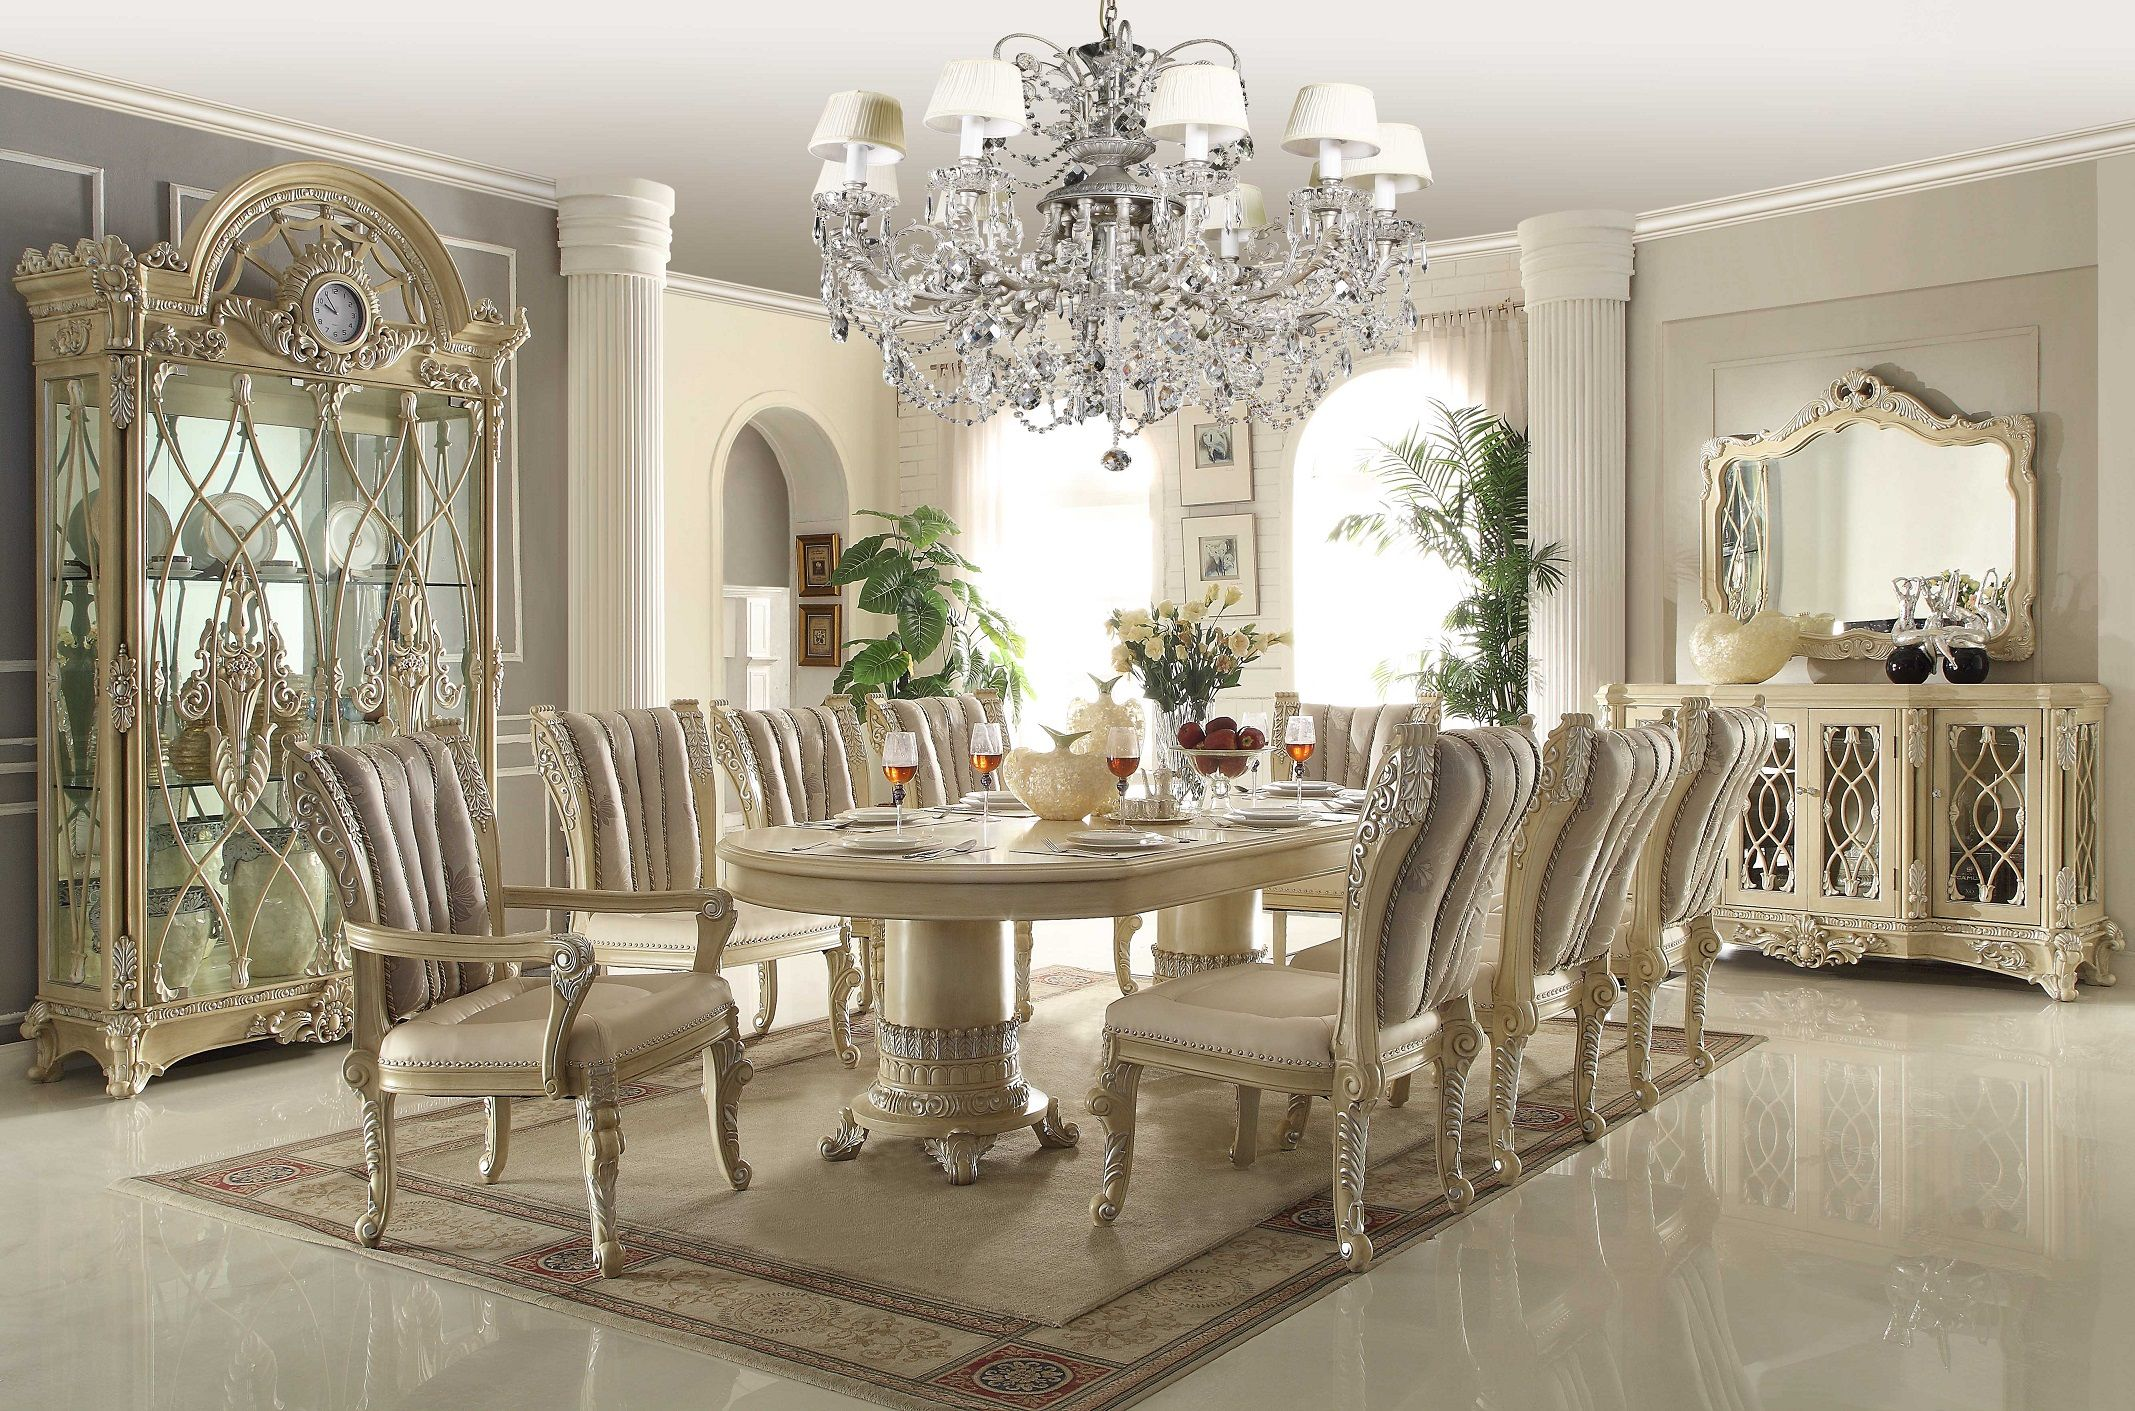 HD 5800 Homey Design Royal Dining Collection Set Homey Design HD 5800 Royal Dining  Room Collection .Introduces The Brilliance Of Time Honored Style Merged ...